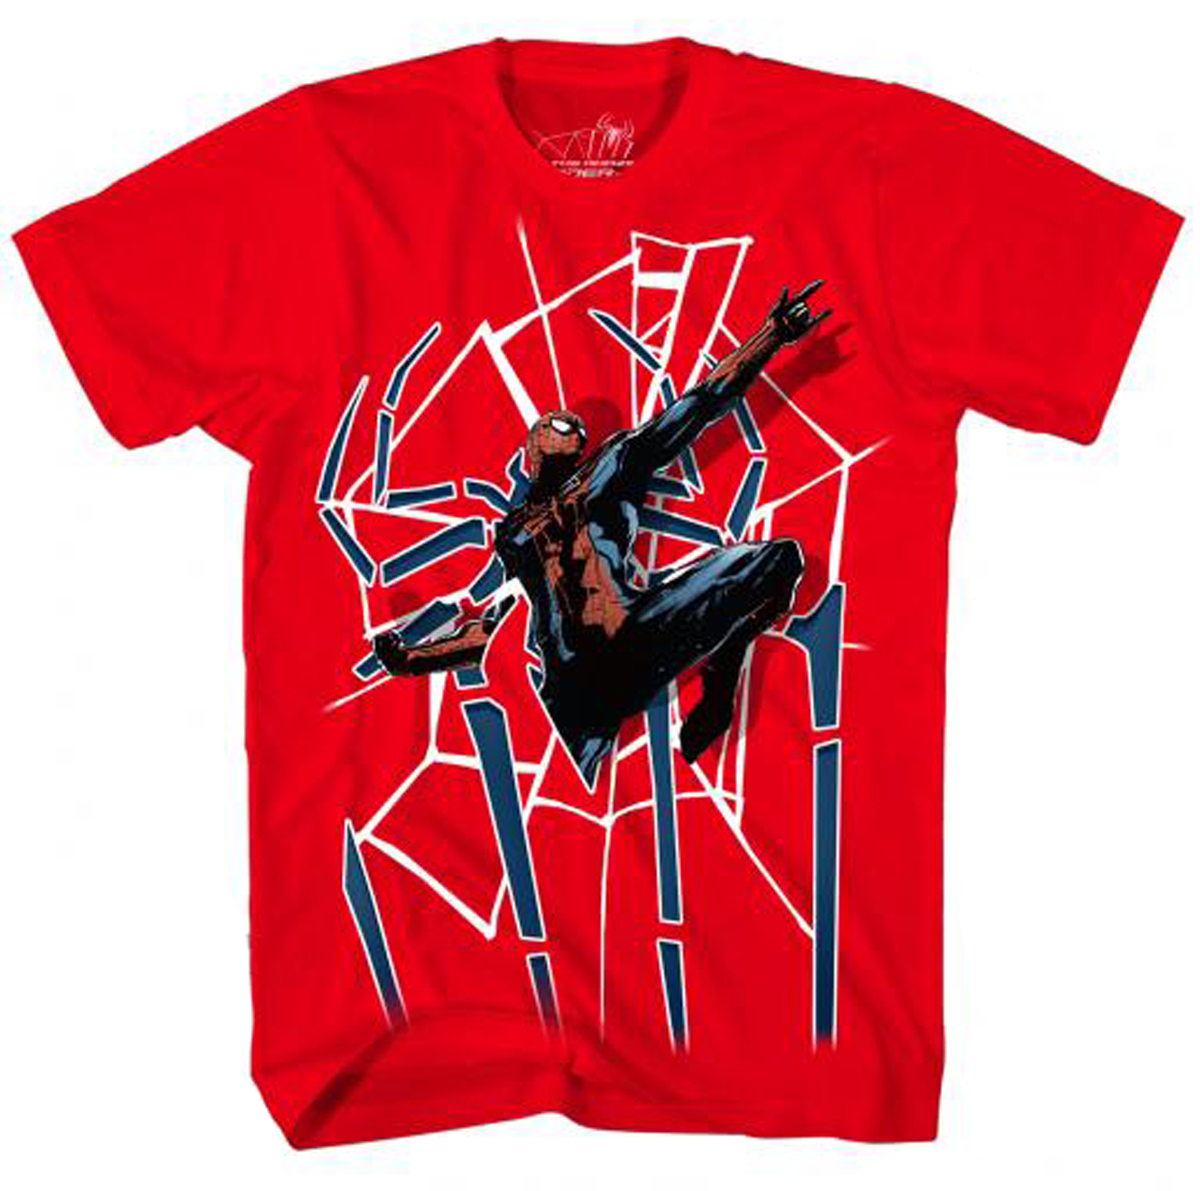 AMAZING SPIDER-MAN SPIDER DOOR RED T/S LG